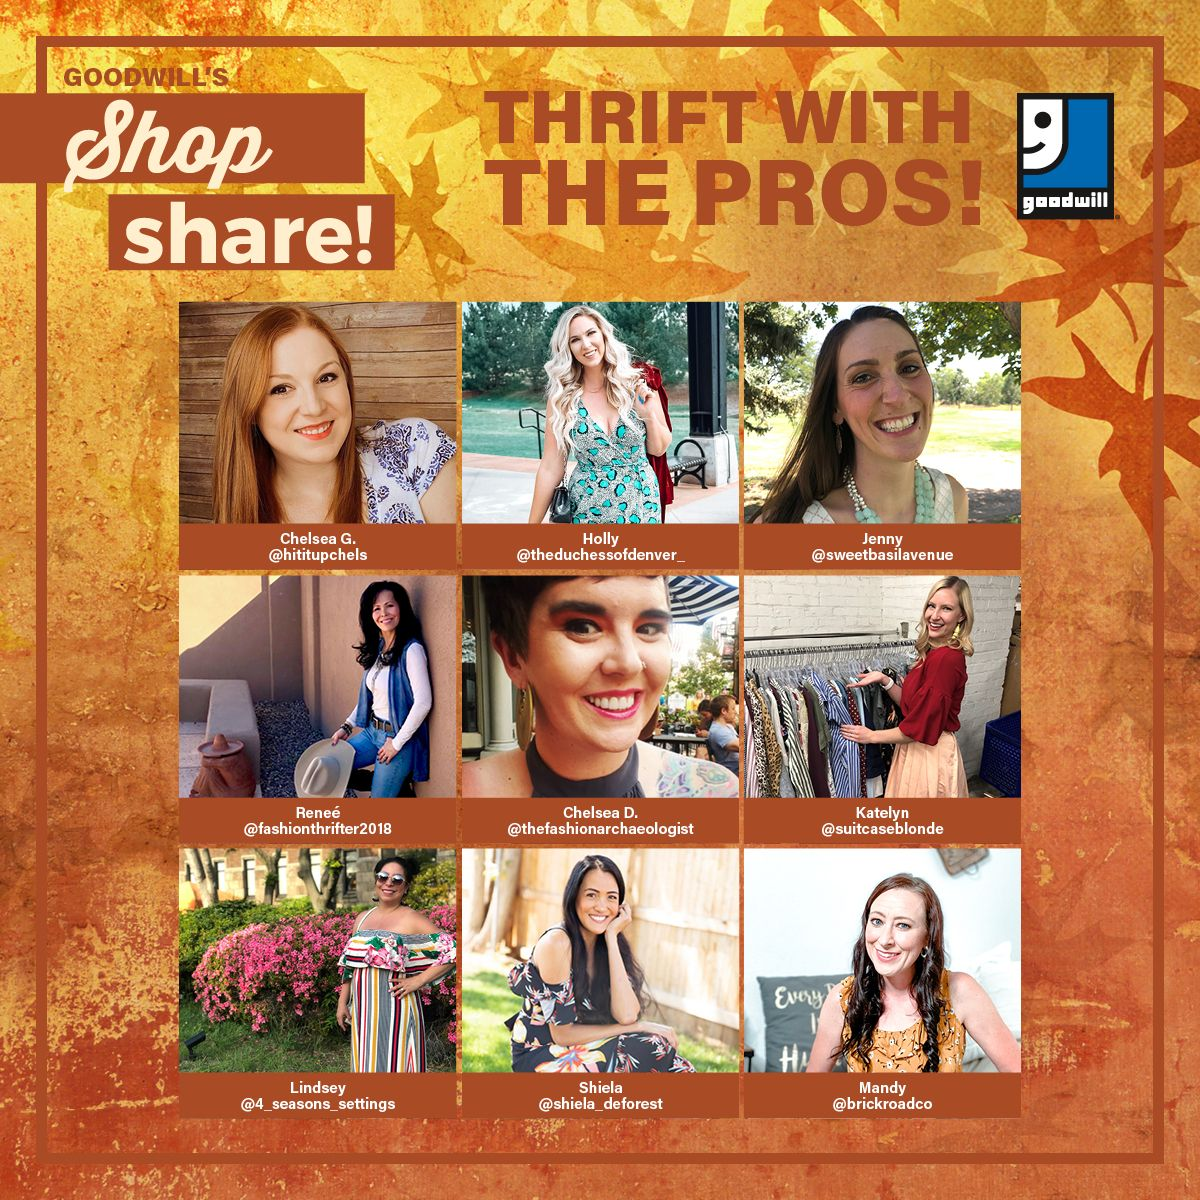 Shop & Share with THREE events in October! Thrift with the PROS!